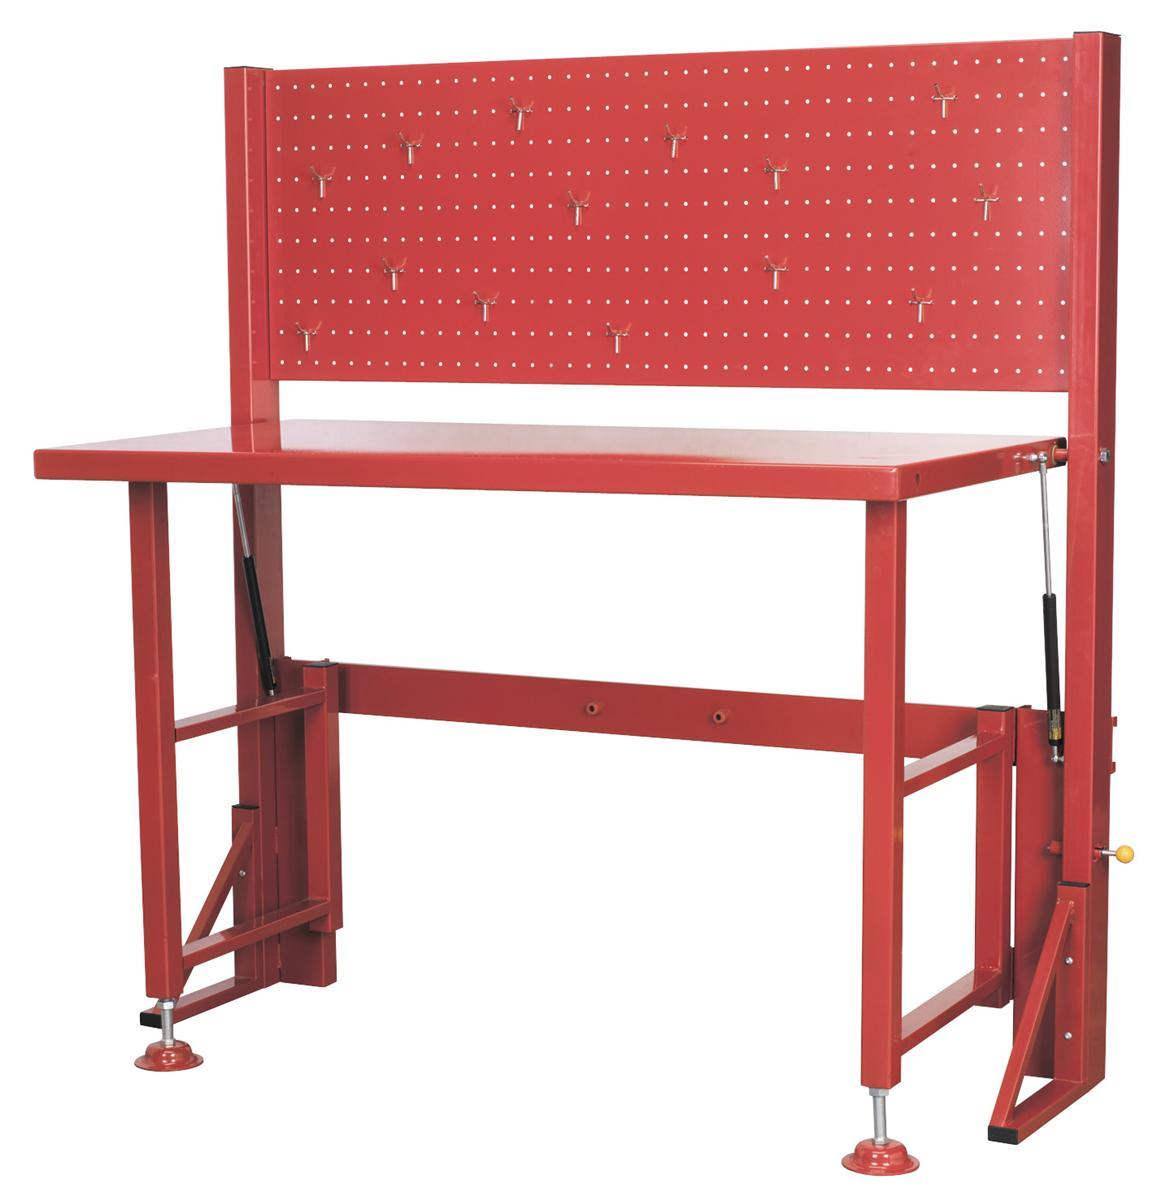 Best Metal Workbench for Best Furniture Design Ideas: Metal Workbenches | Metal Workbench | Metal Workbench Drawers